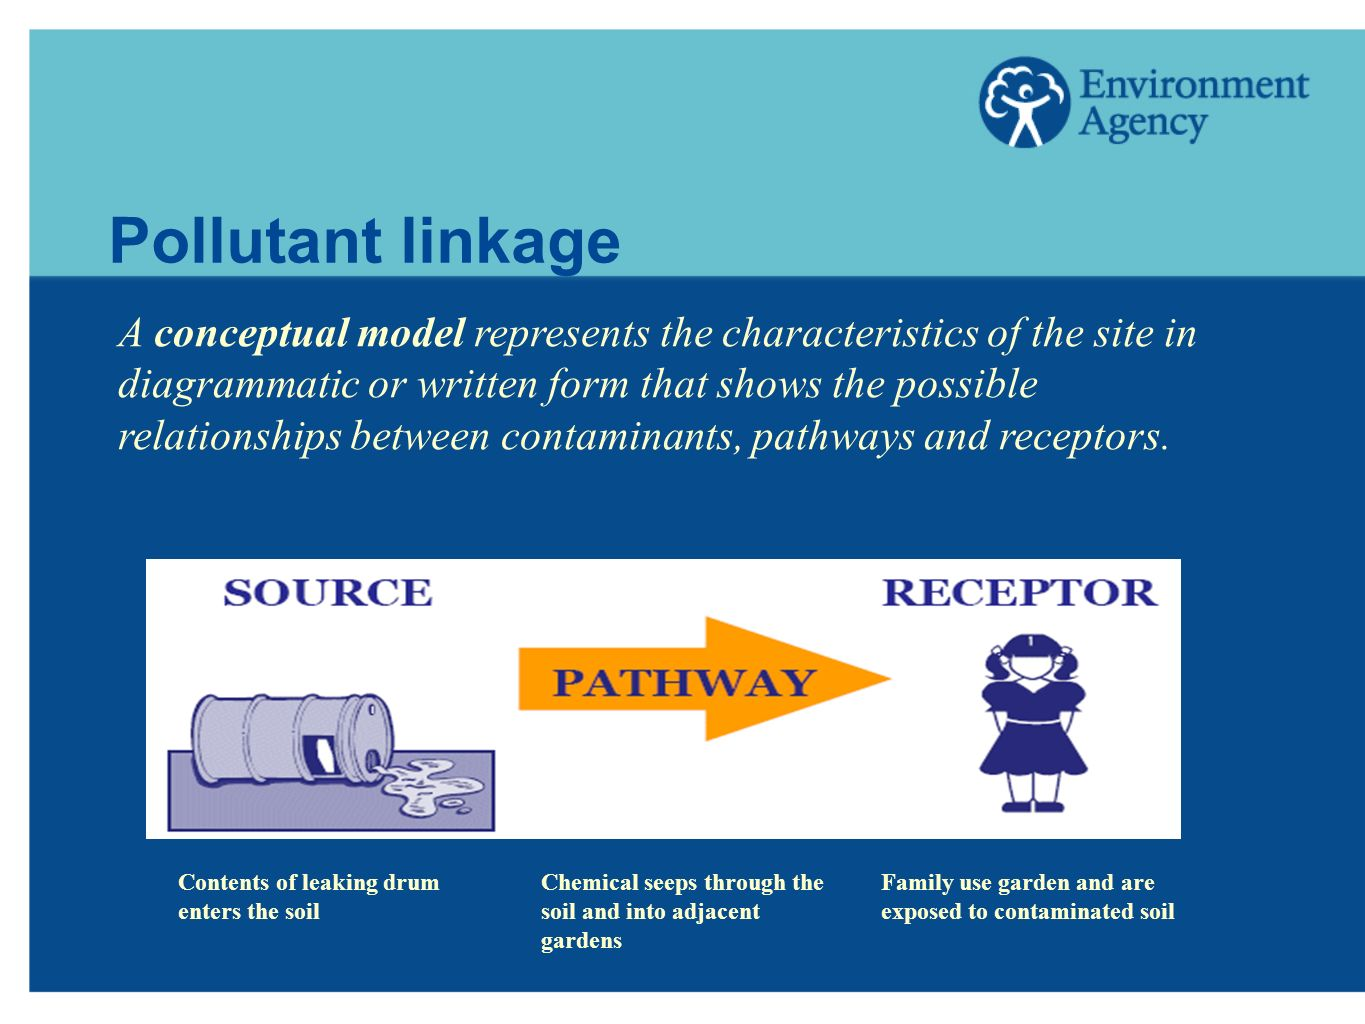 Pollutant linkage